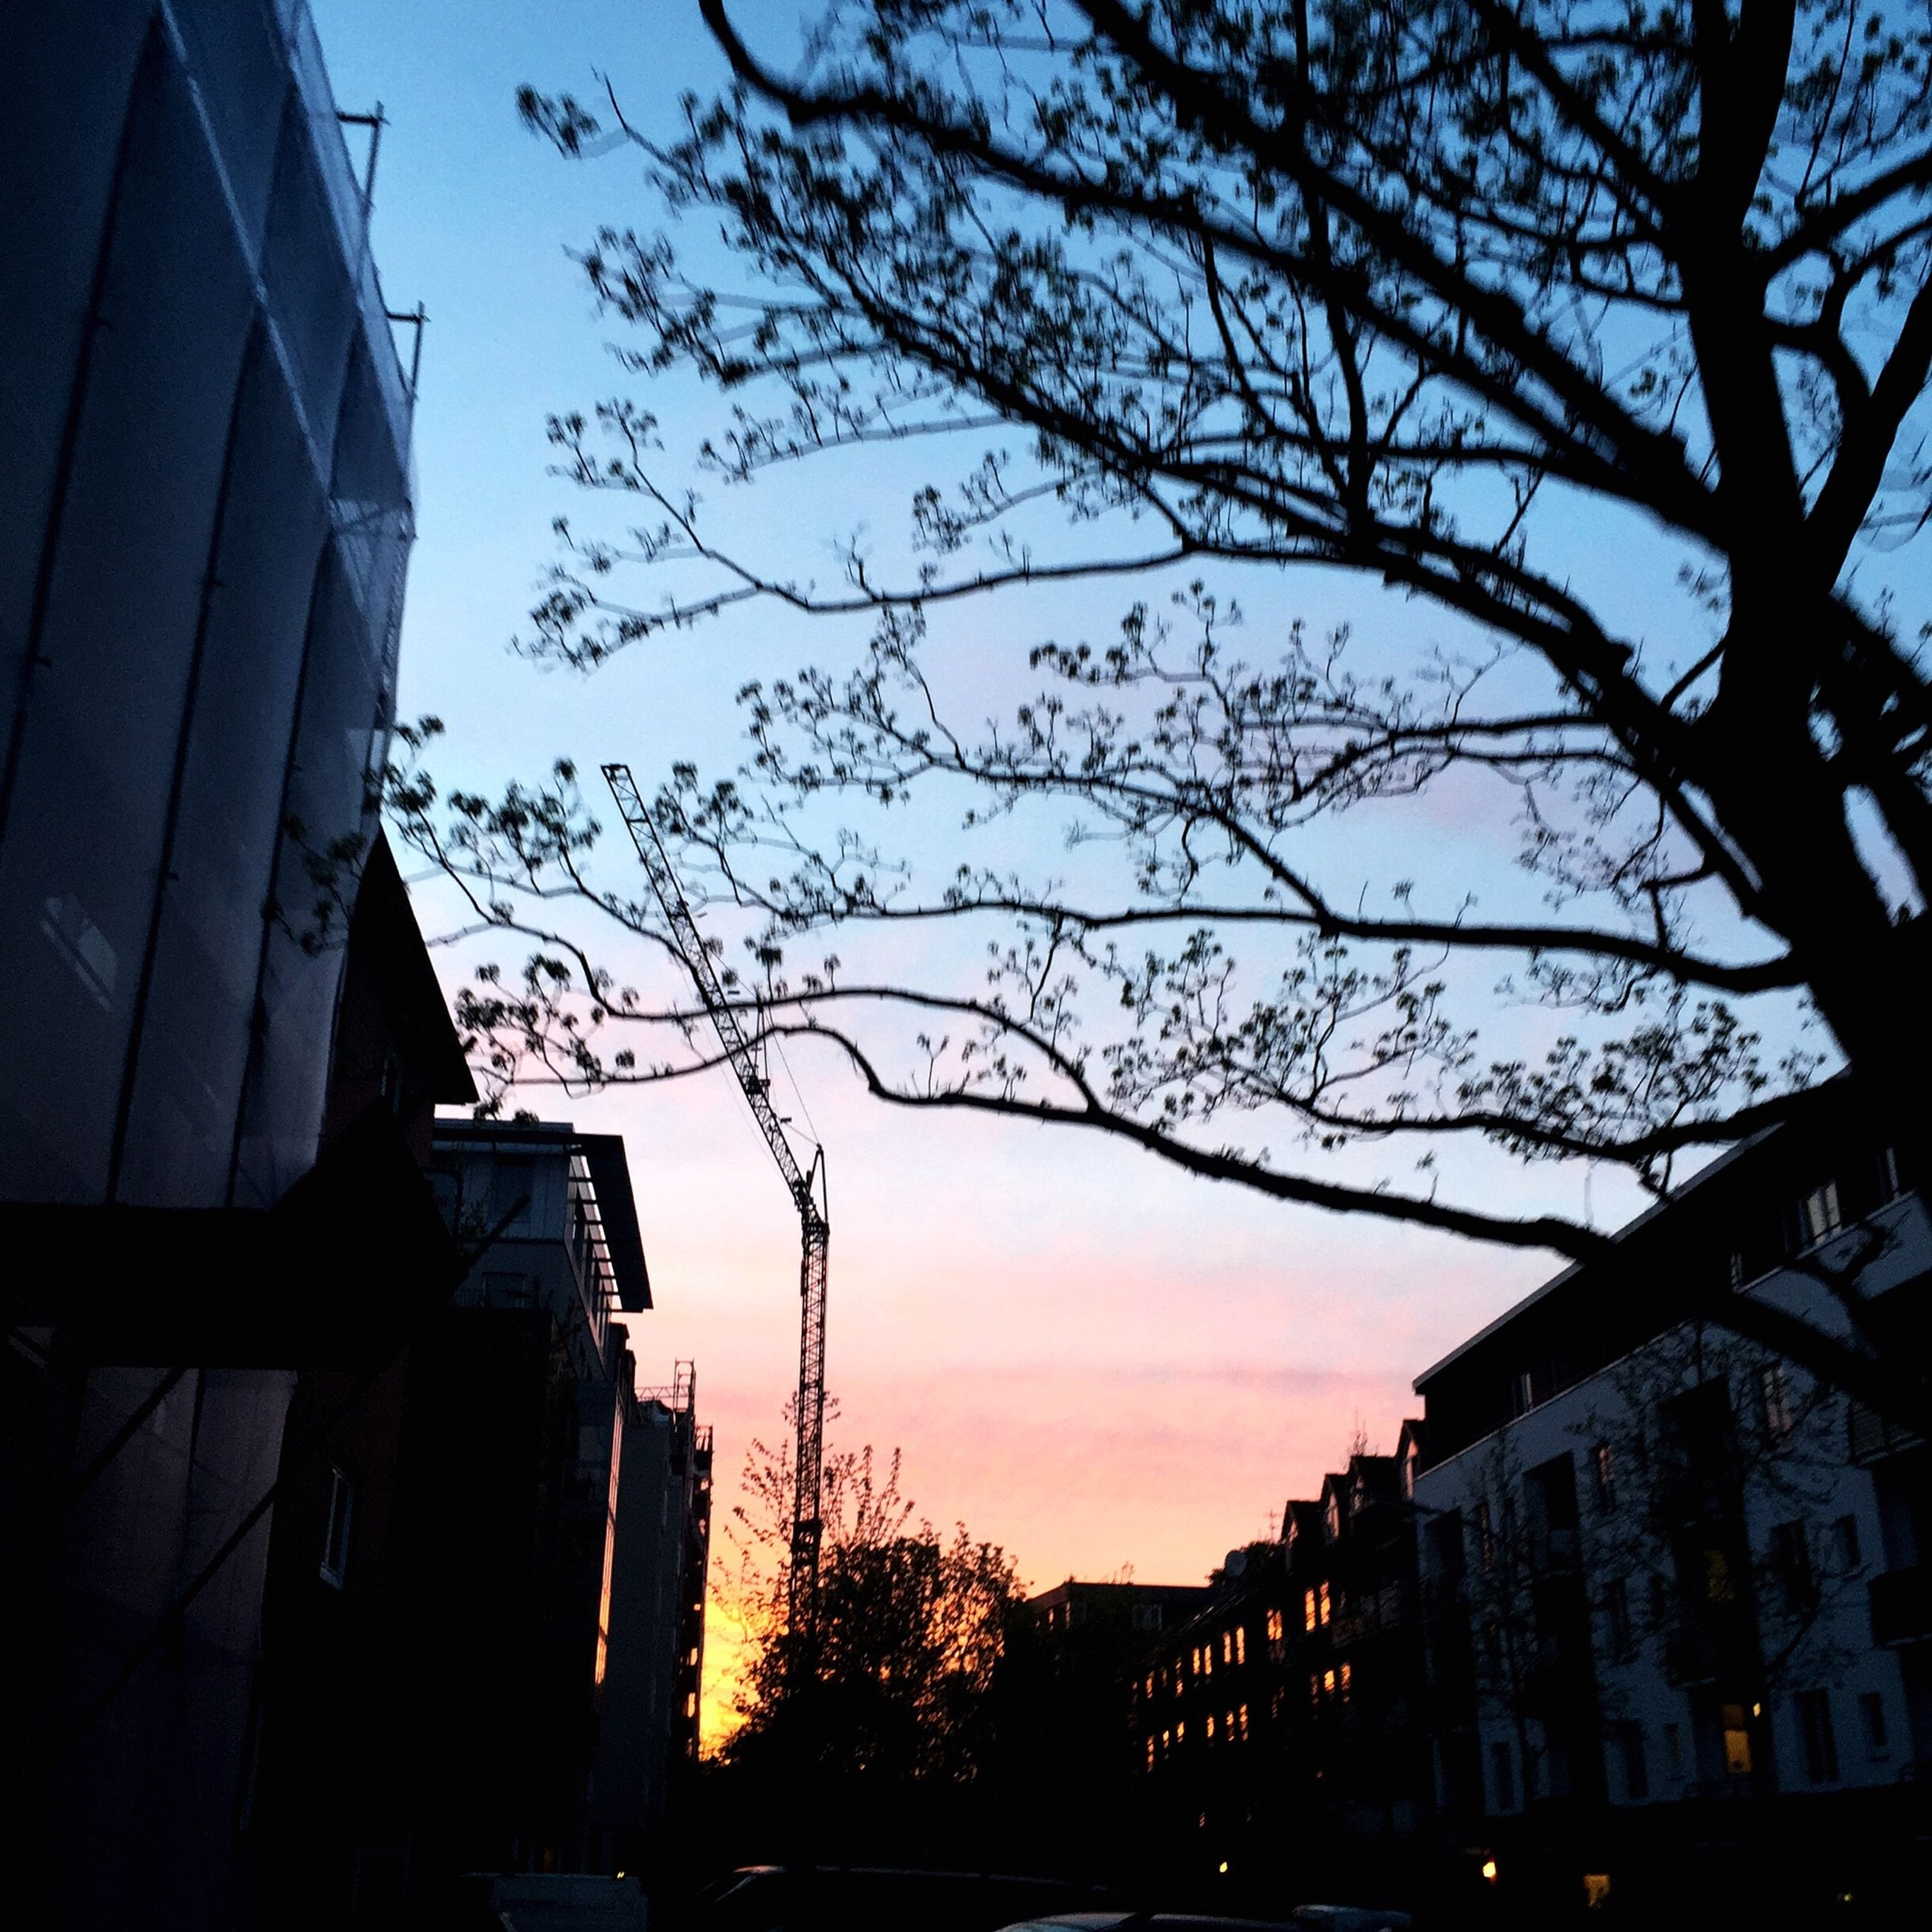 building exterior, architecture, built structure, silhouette, sunset, low angle view, sky, tree, bare tree, city, branch, building, dusk, house, residential structure, residential building, outdoors, no people, nature, orange color